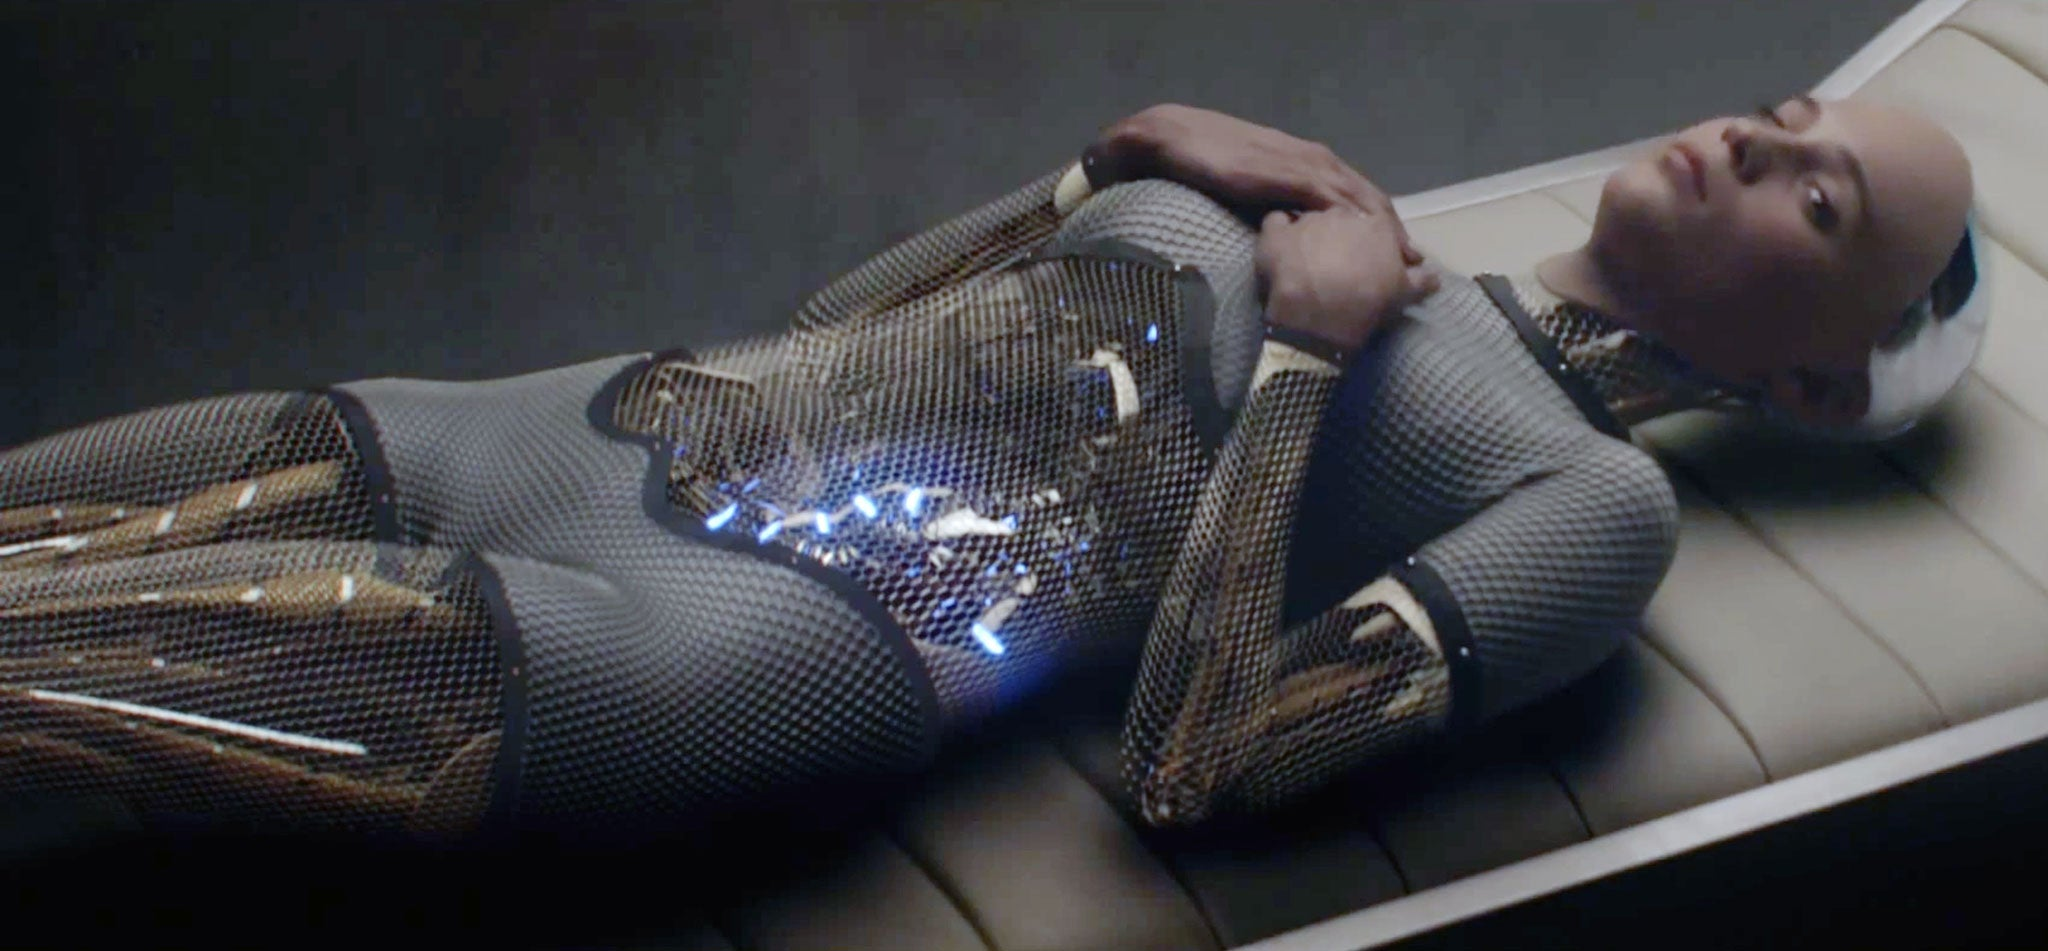 Humans become aroused when touching robots in 'sensitive' places, Stanford University study finds